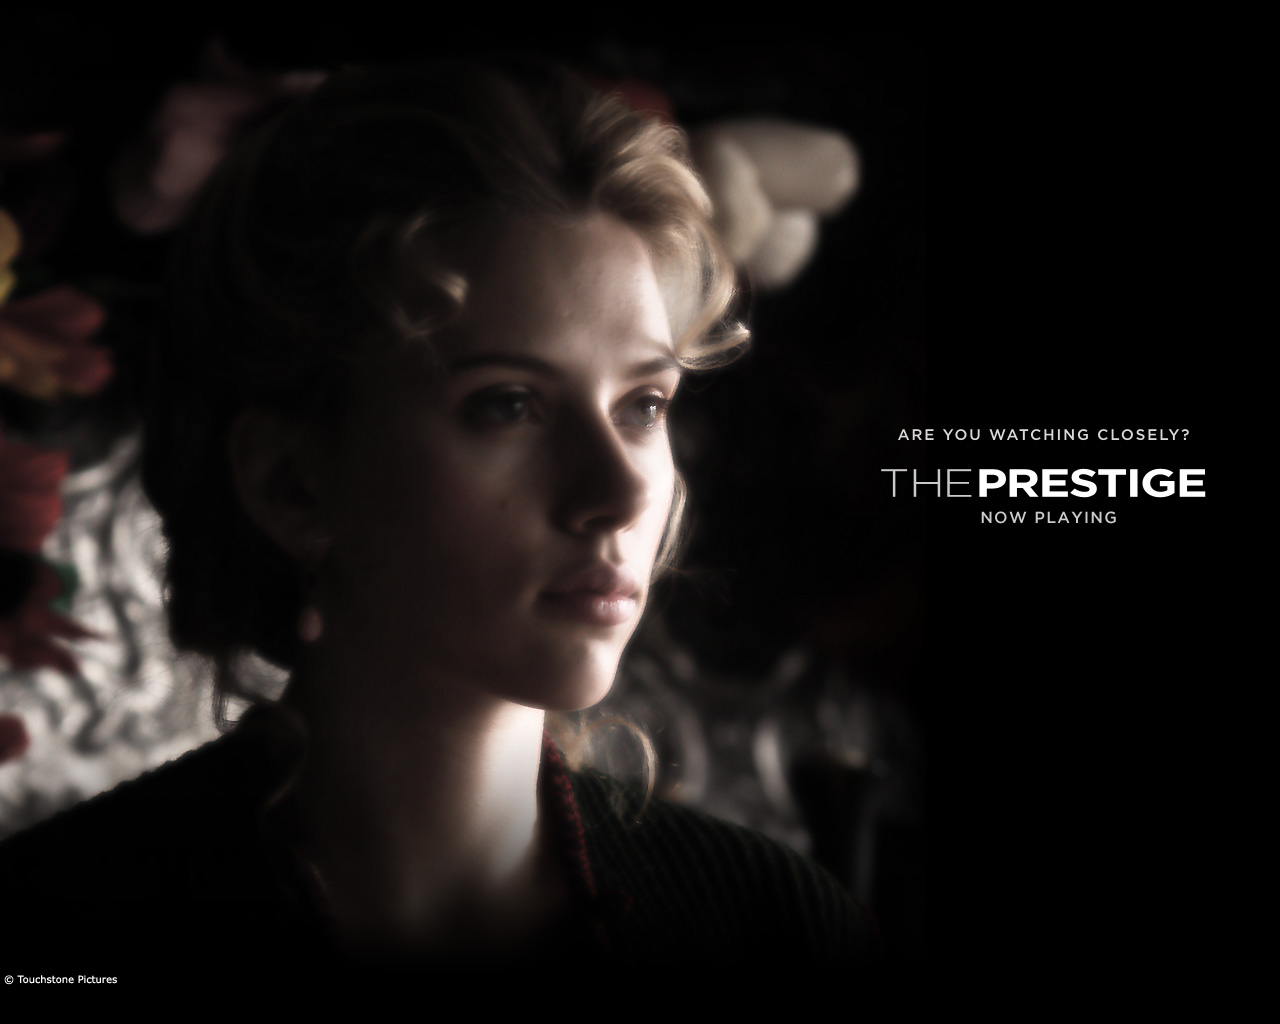 The Prestige Wallpaper and Background Image 1280x1024 ID4388 1280x1024